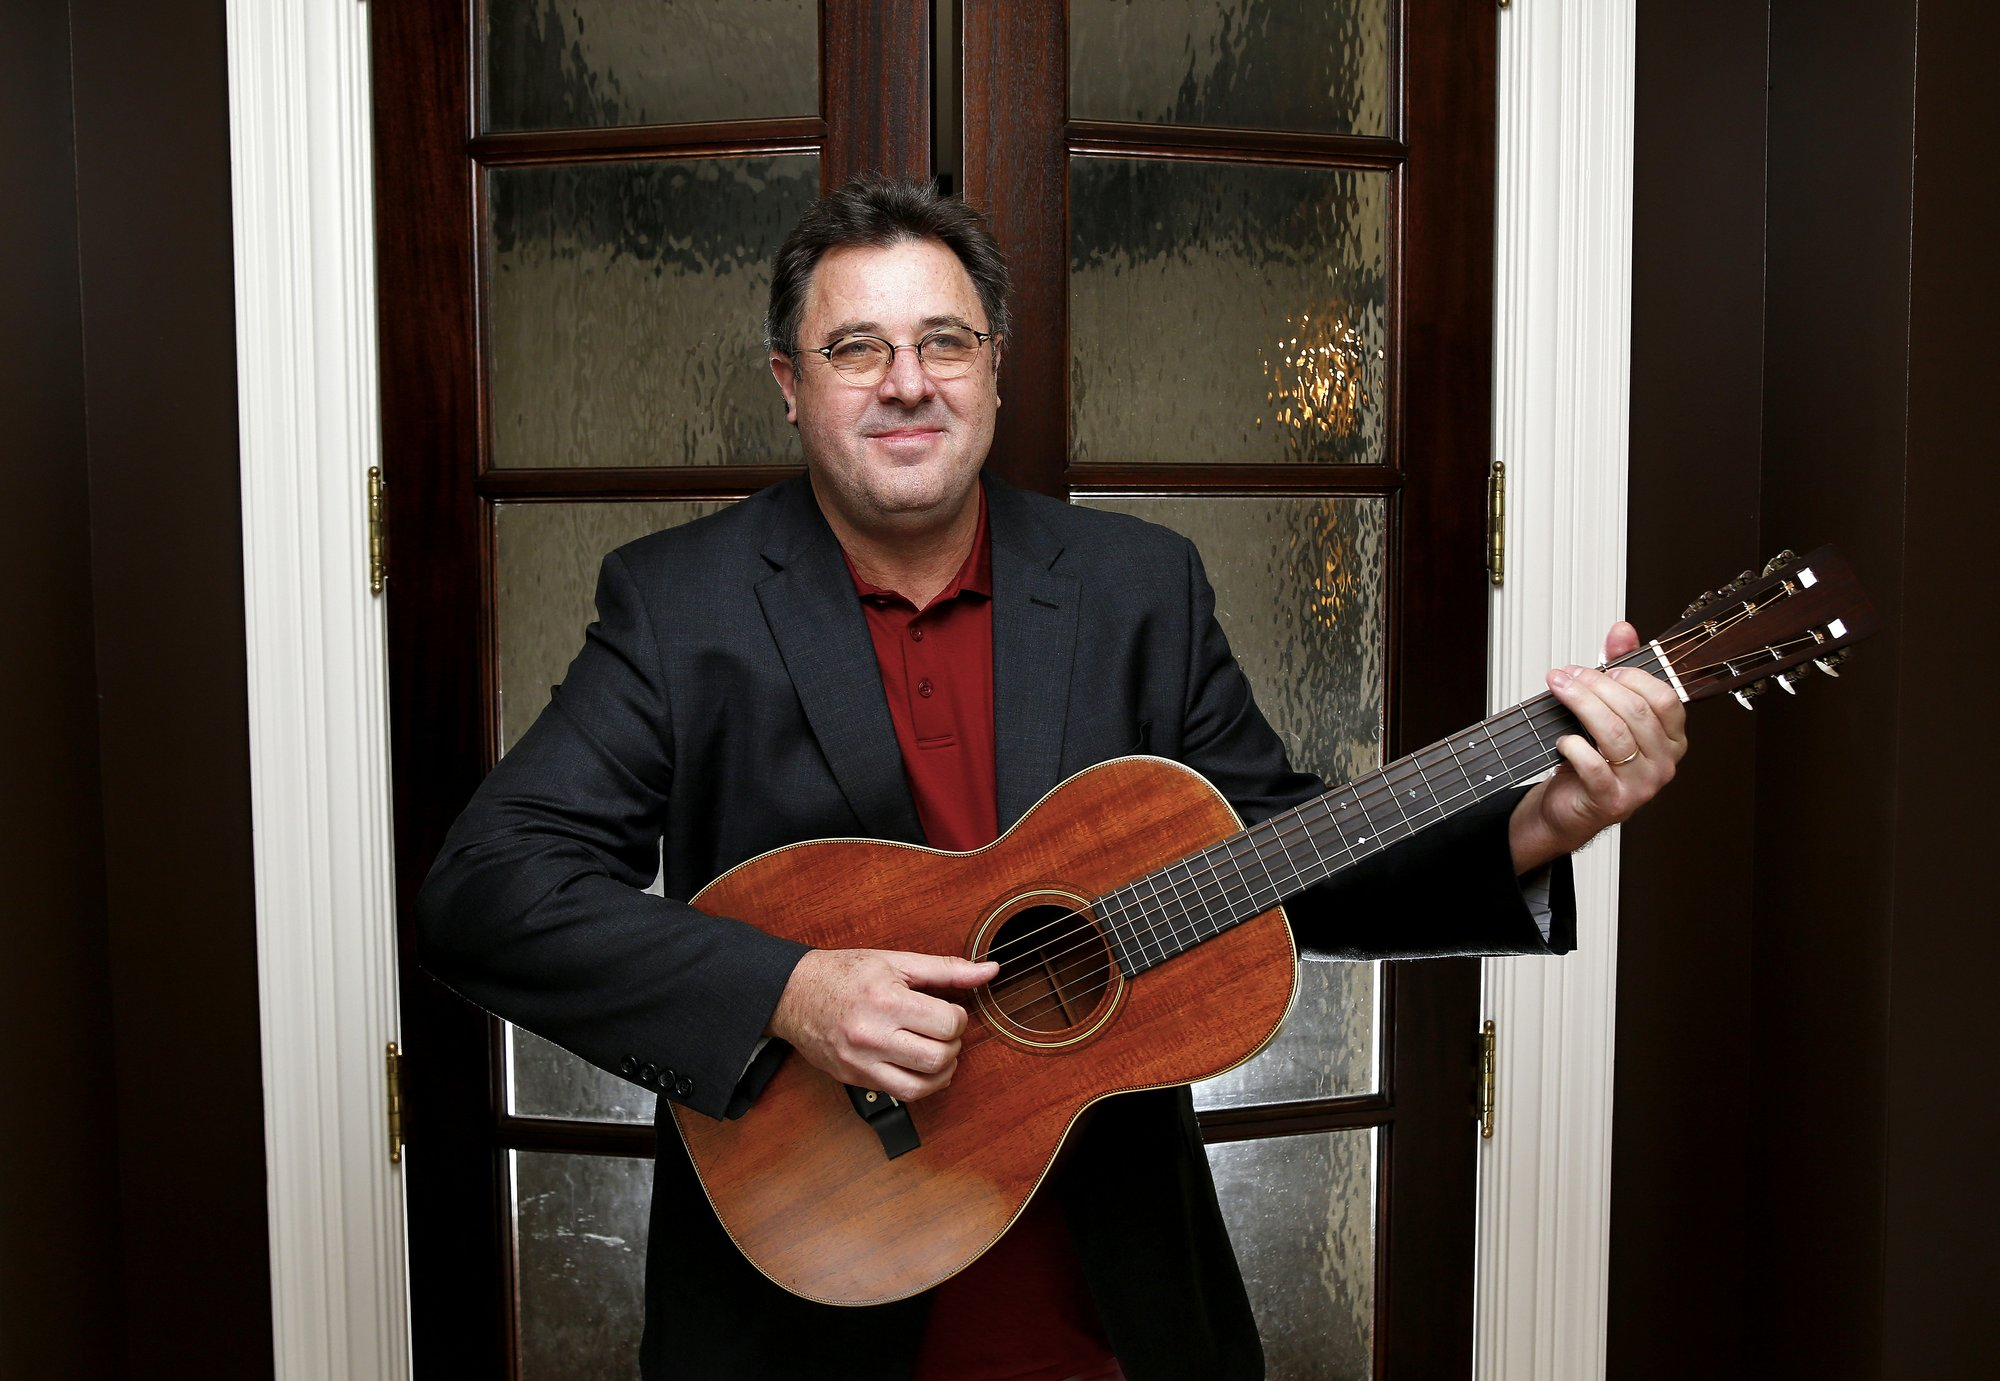 Vince Gill weighs hard truths with emotional depth on 'Okie'